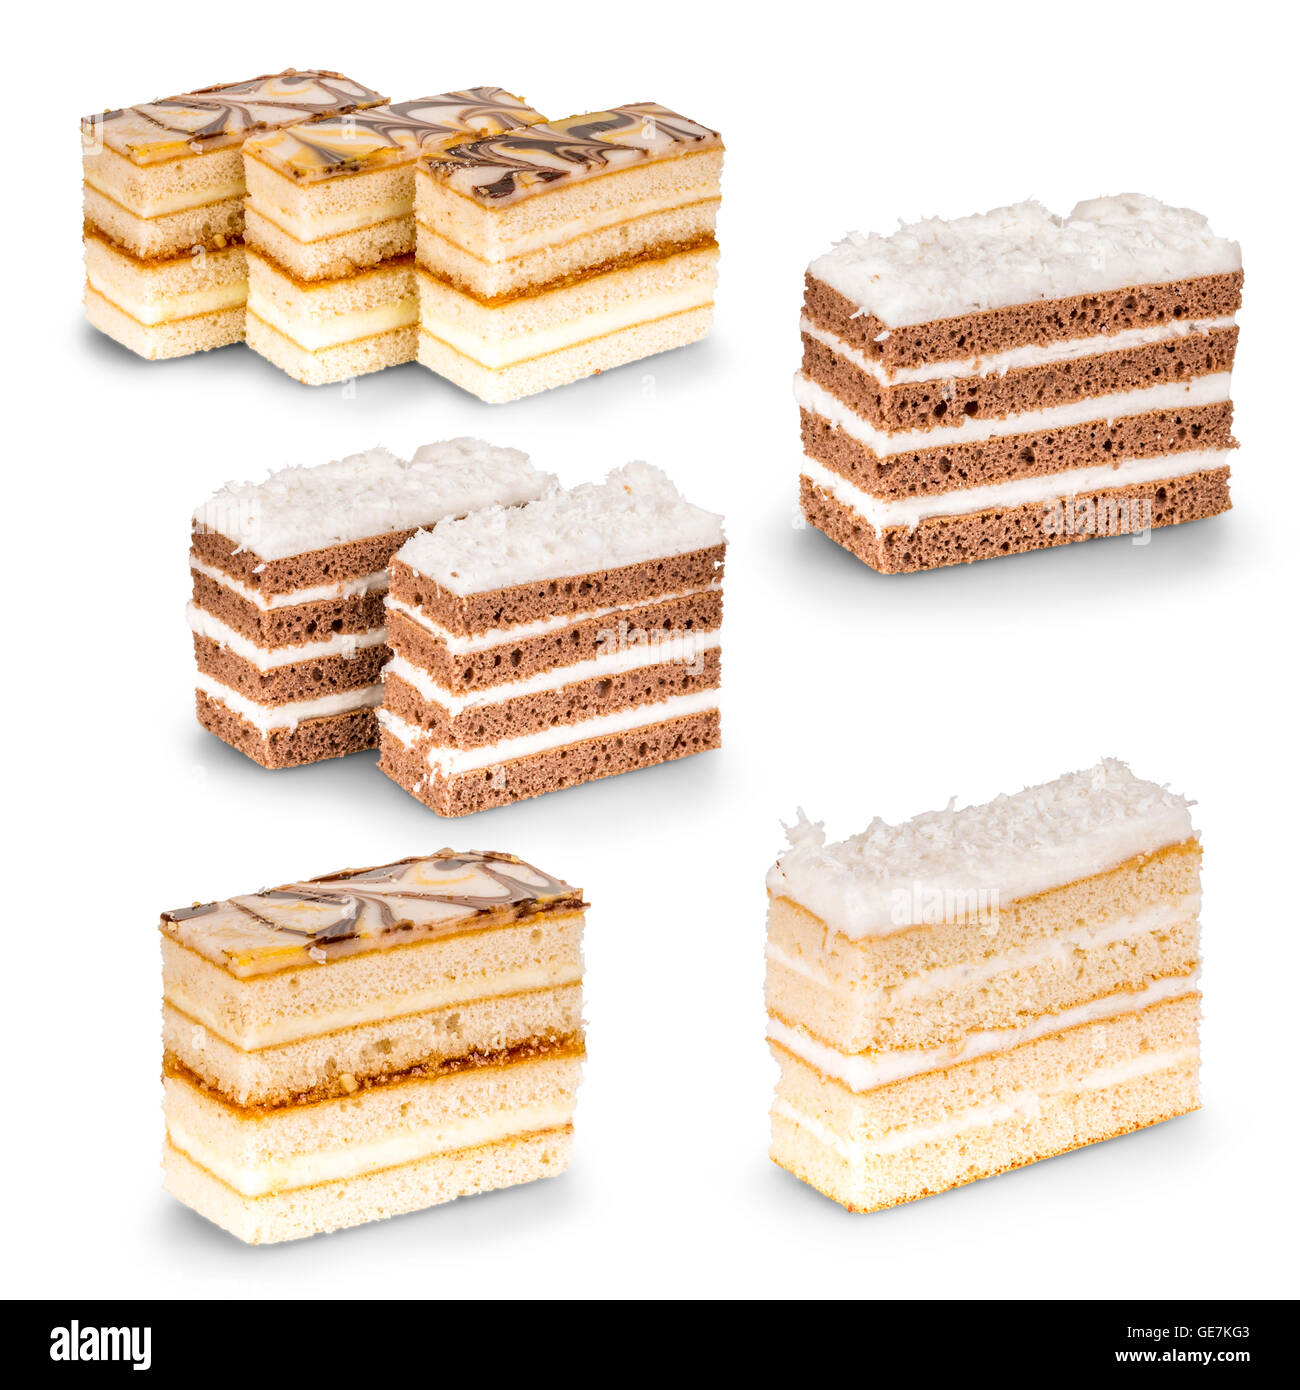 Various cake pieces of chocolate and vanilla filling - Stock Image